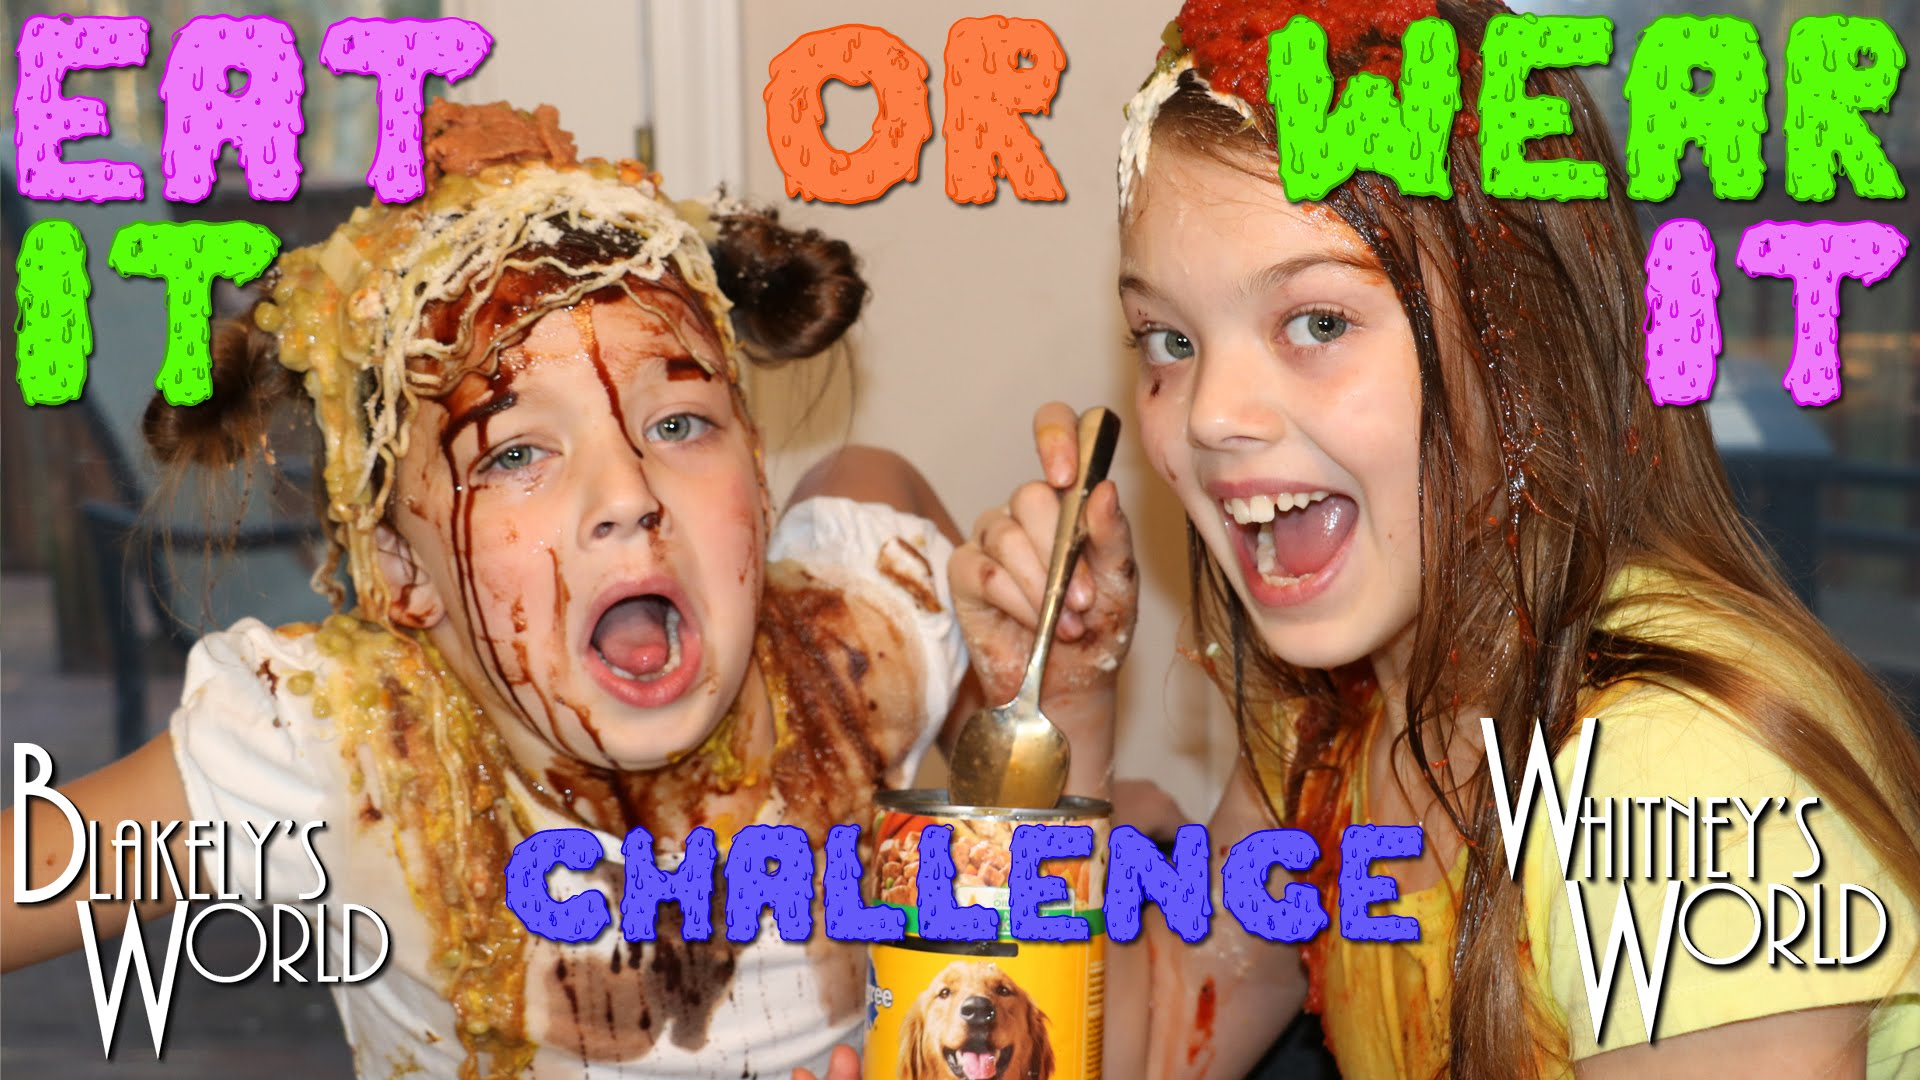 EAT IT or WEAR IT Challenge | Whitney and Blakely - YouTube